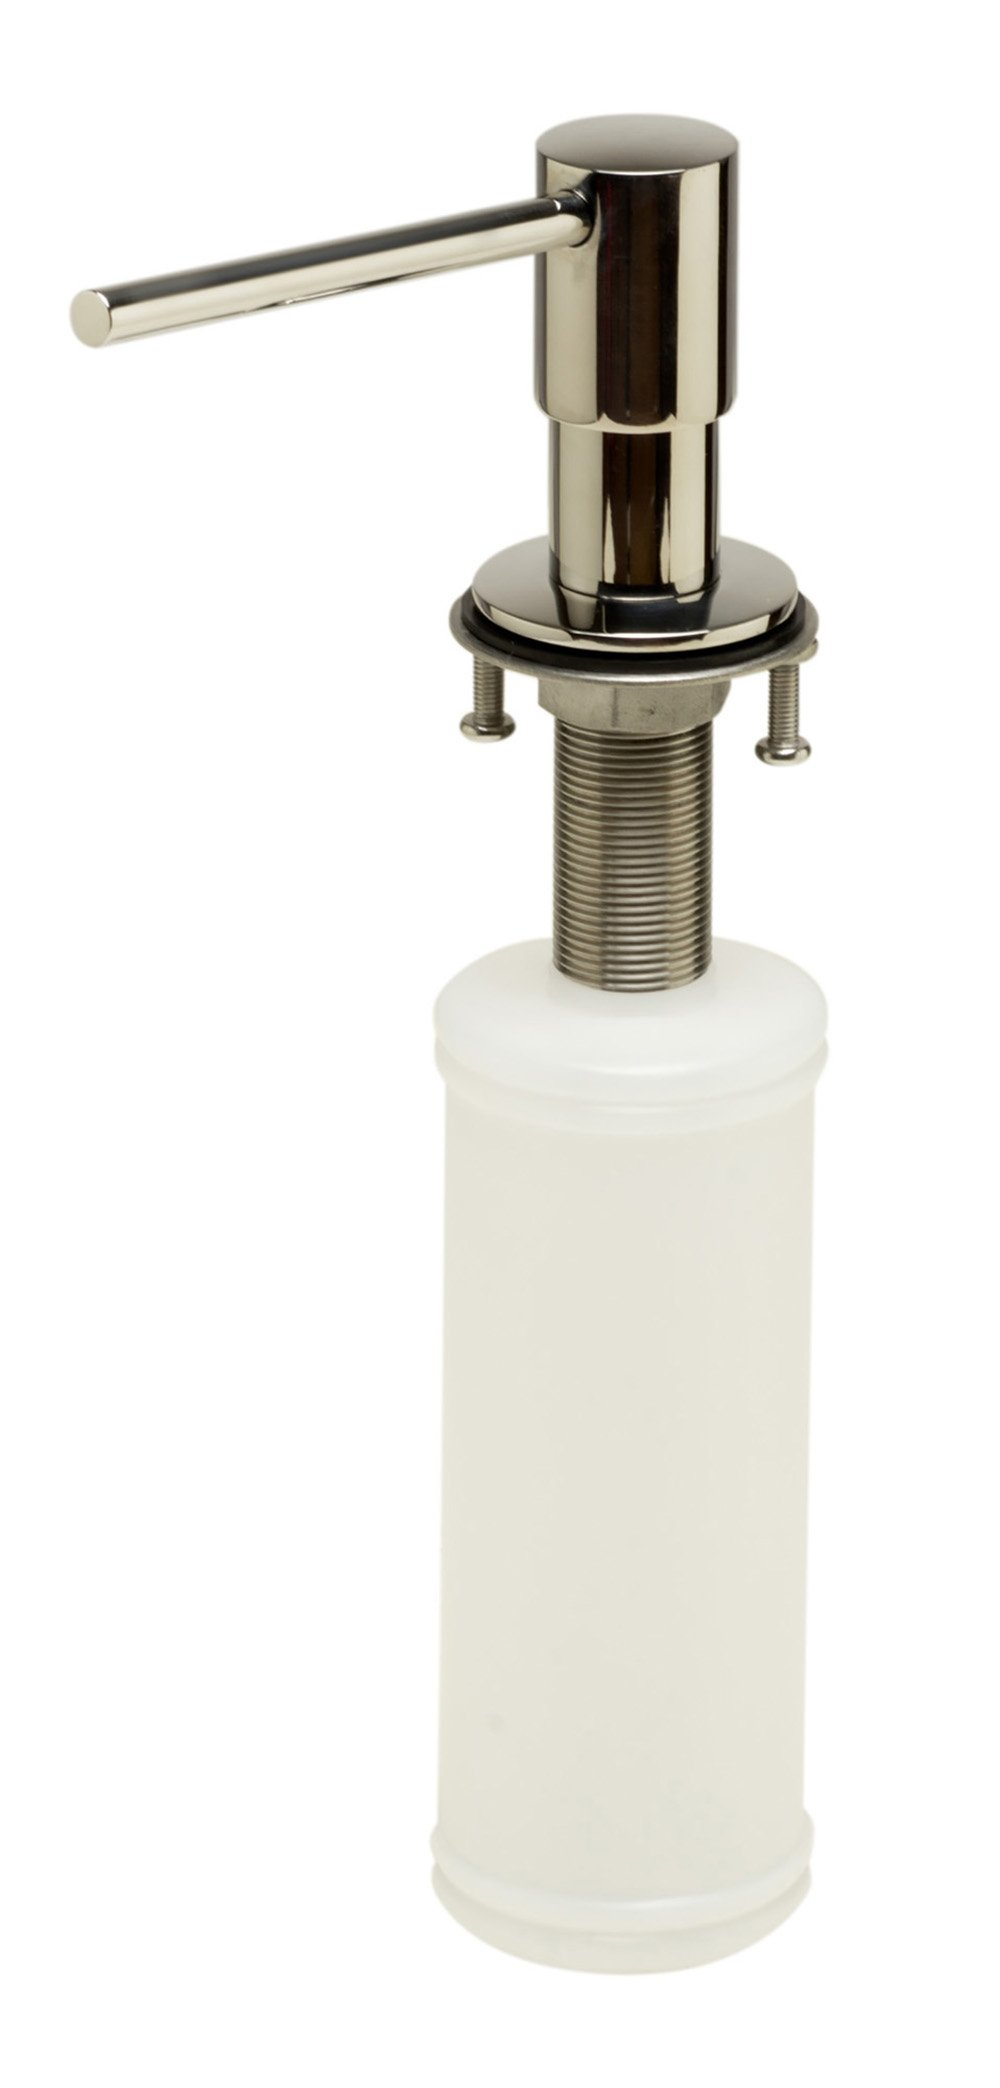 ALFI brand AB5006-PSS Modern Round Soap Dispenser, Polished Stainless Steel